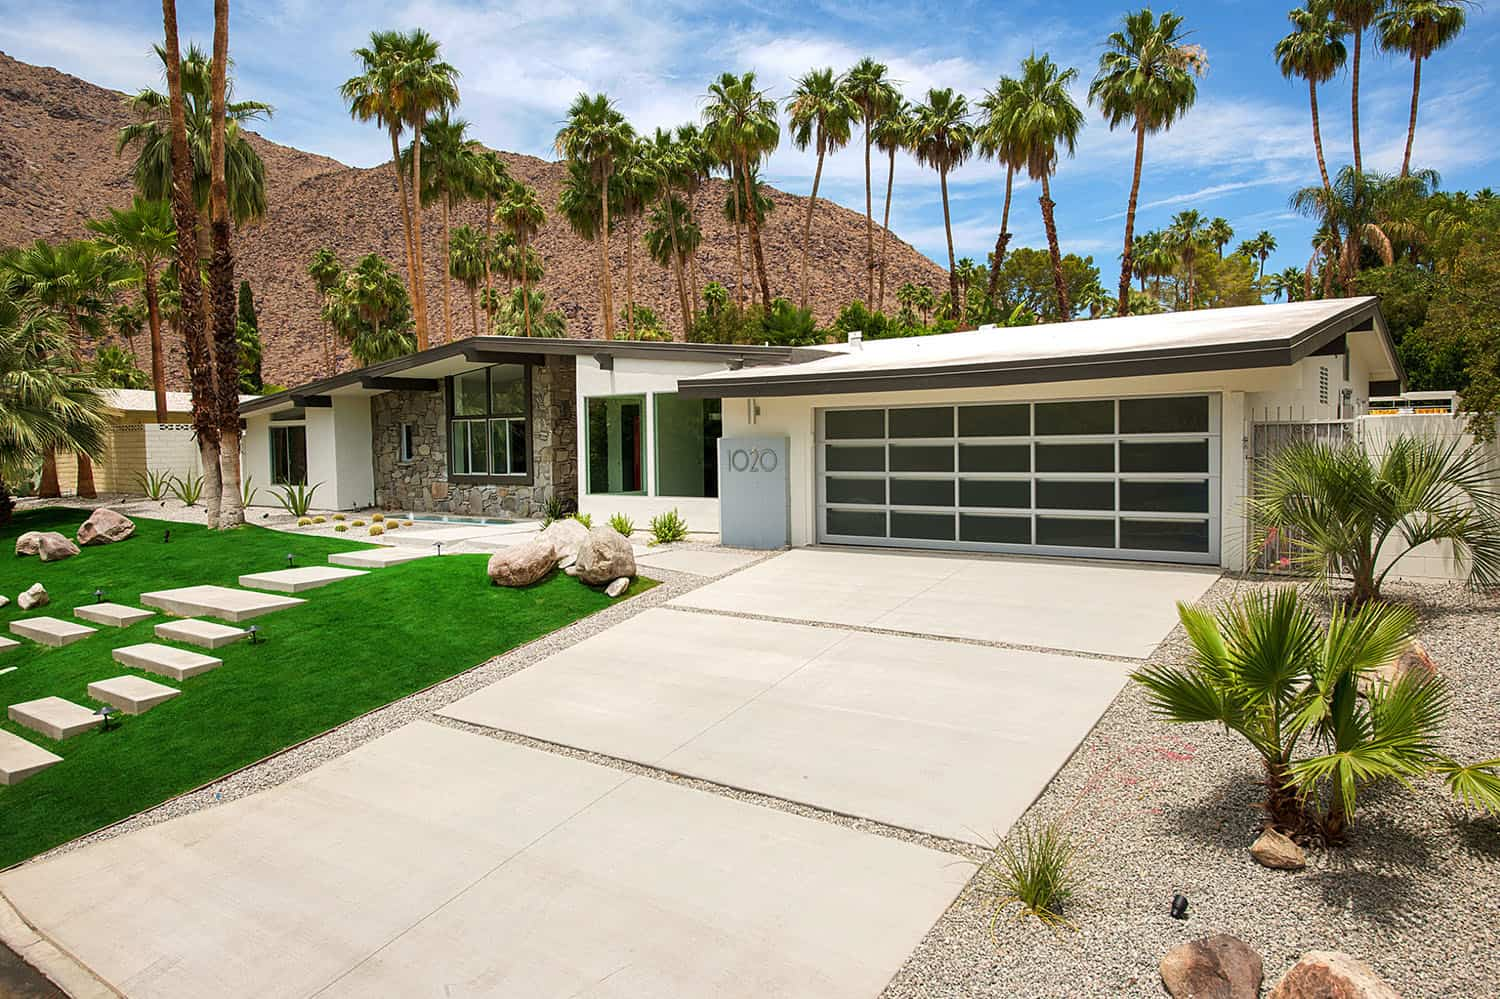 Midcentury ranch home gets a spectacular renovation in Palm Springs